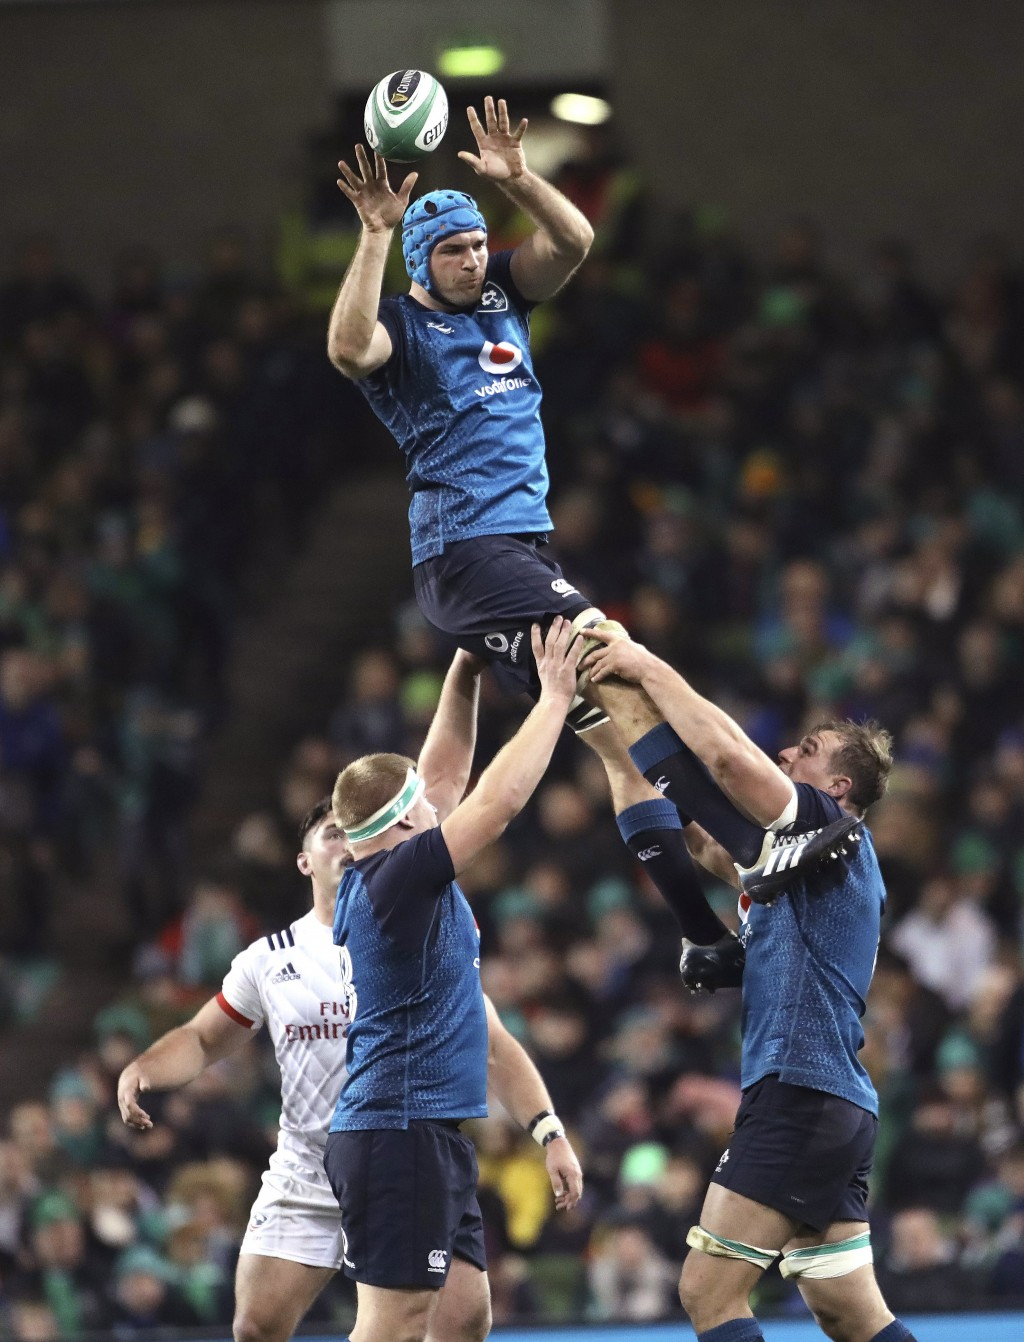 FILE - In this file photo dated Saturday, Nov 24, 2018, Ireland's Tadhg Beirne, top, wins a line out against the USA during their Rugby Union Internat